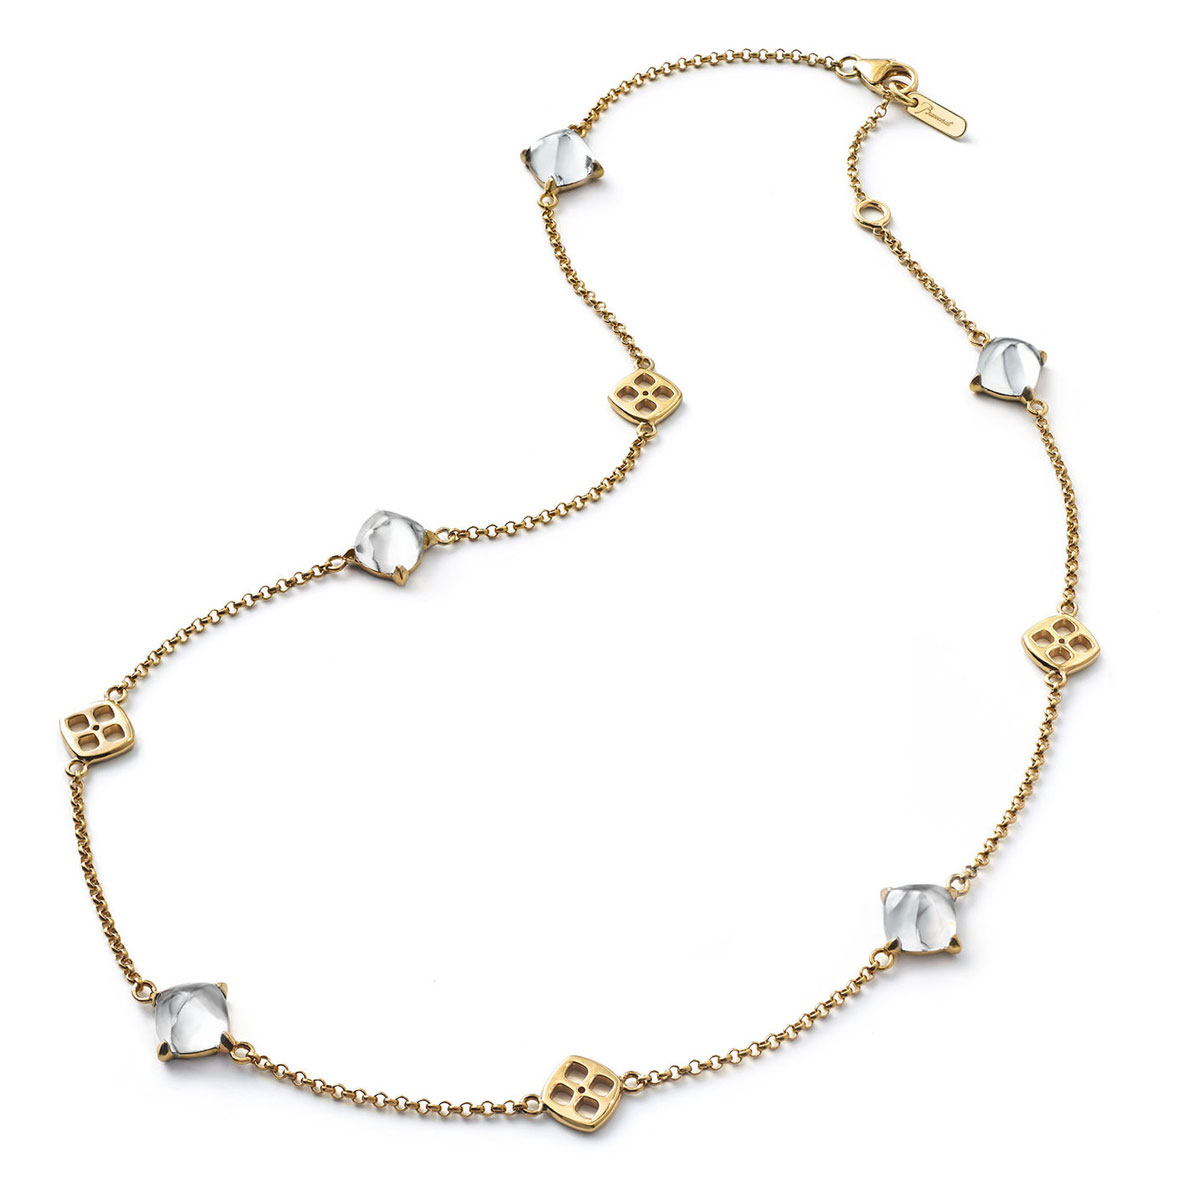 Baccarat Crystal Medicis Mini Necklace Vermeil Gold Clear